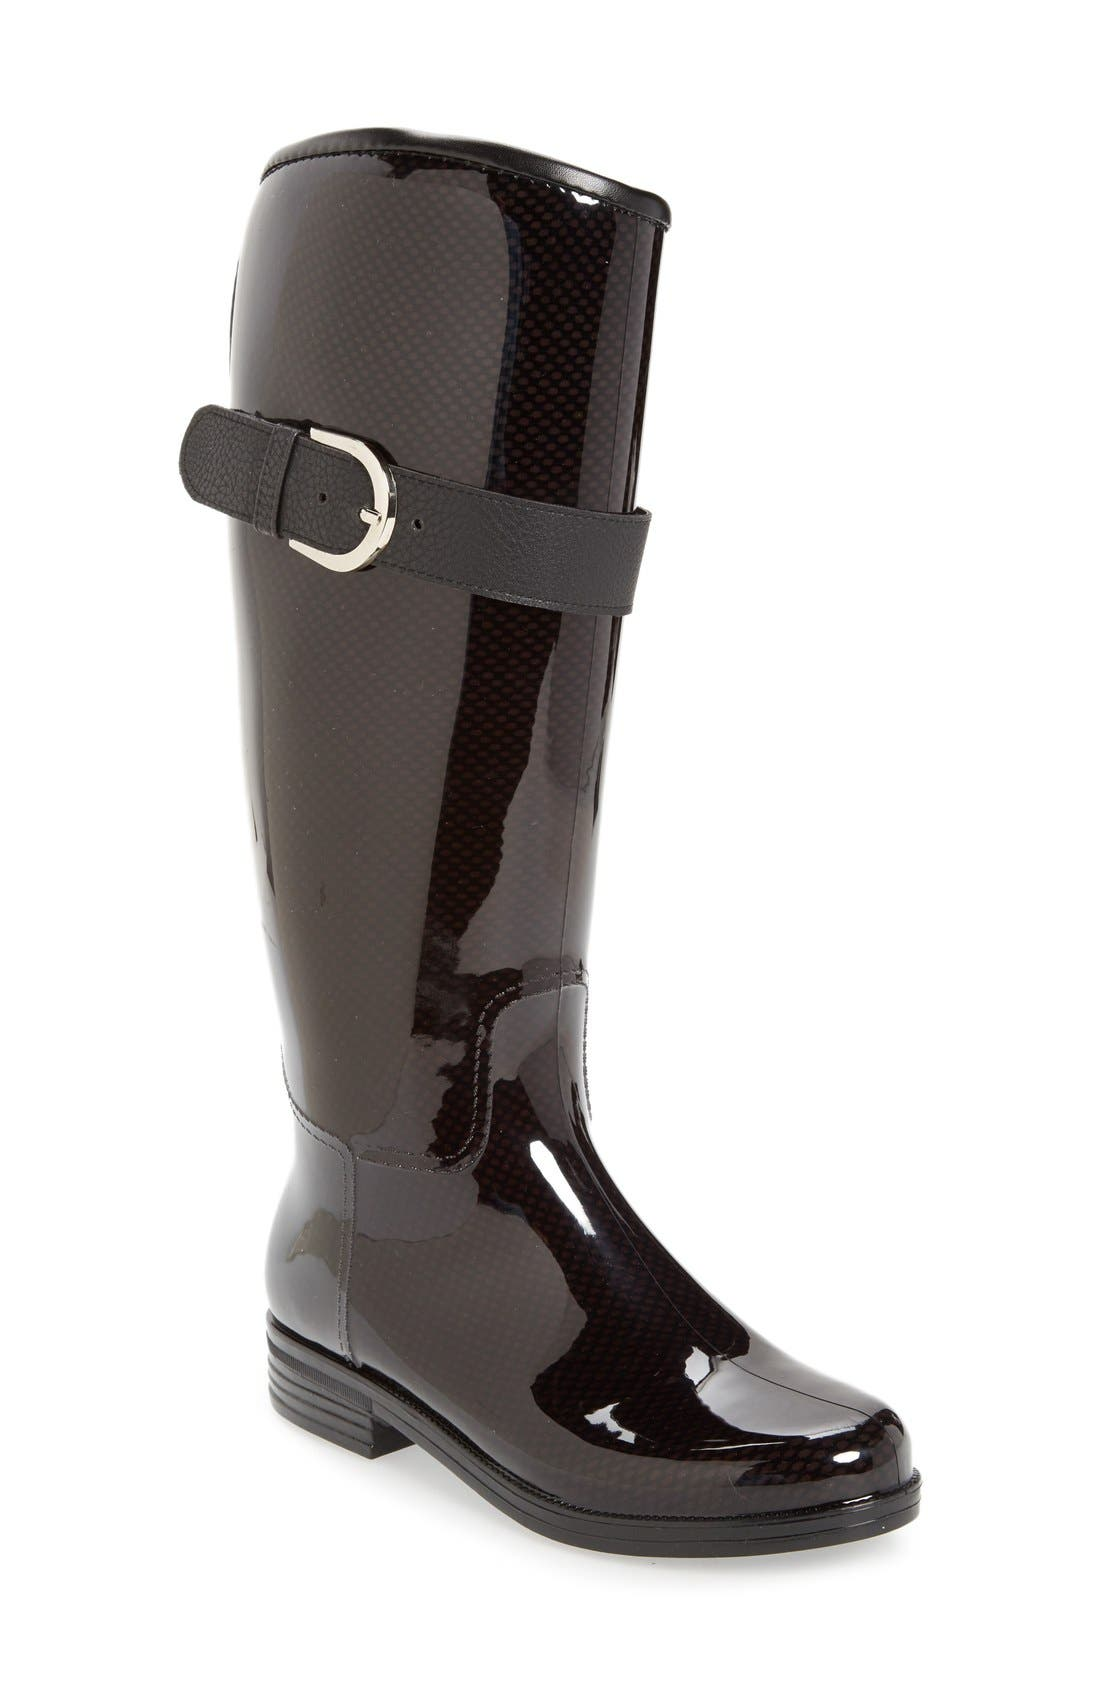 DÄV 'Bristol' Weatherproof Knee High Rain Boot